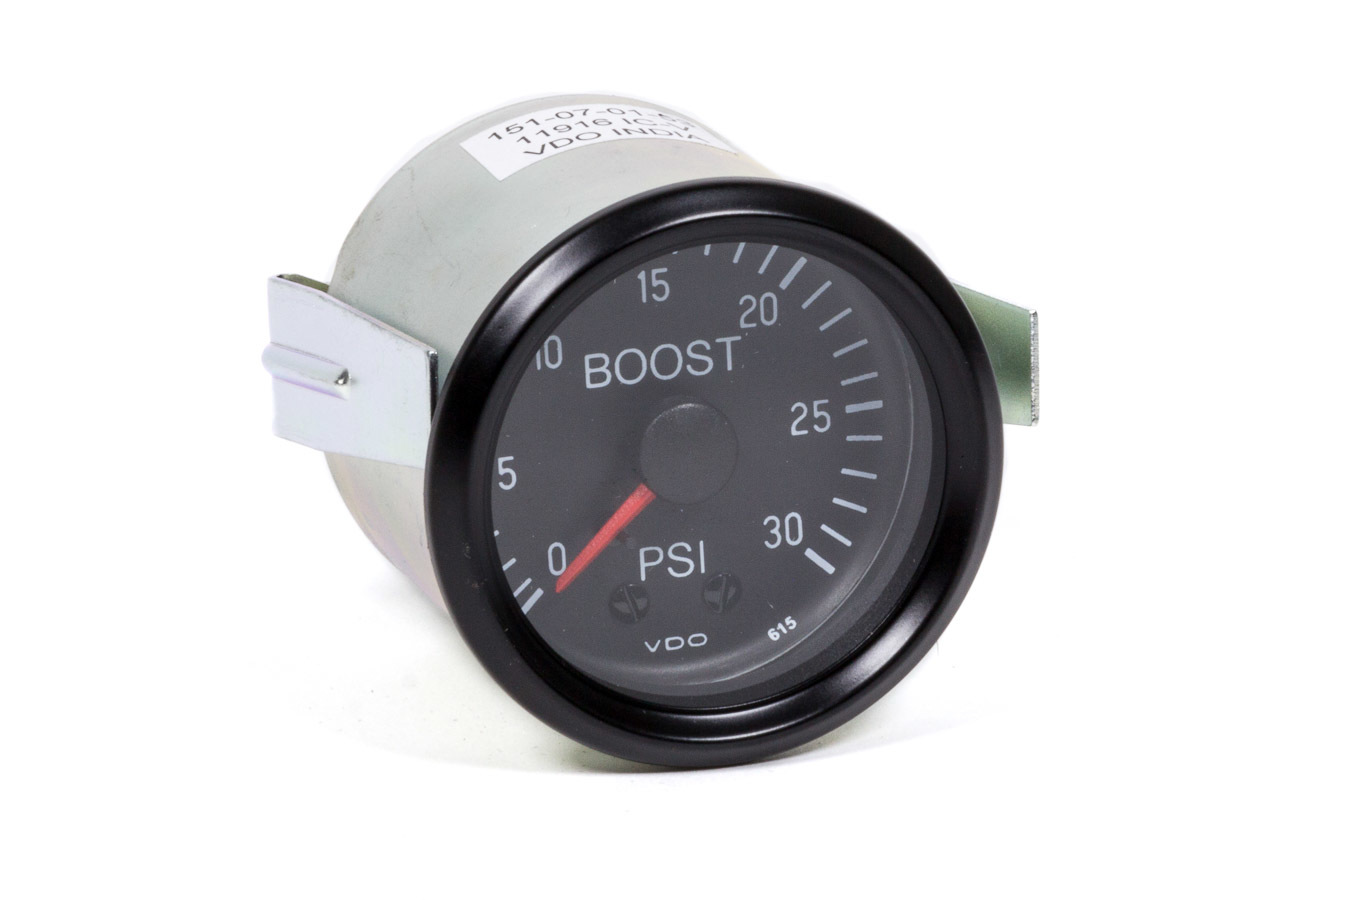 VDO 150-052 Boost Gauge, Cockpit, 0-30 psi, Mechanical, Analog, 2-1/16 in Diameter, Black Face, Each